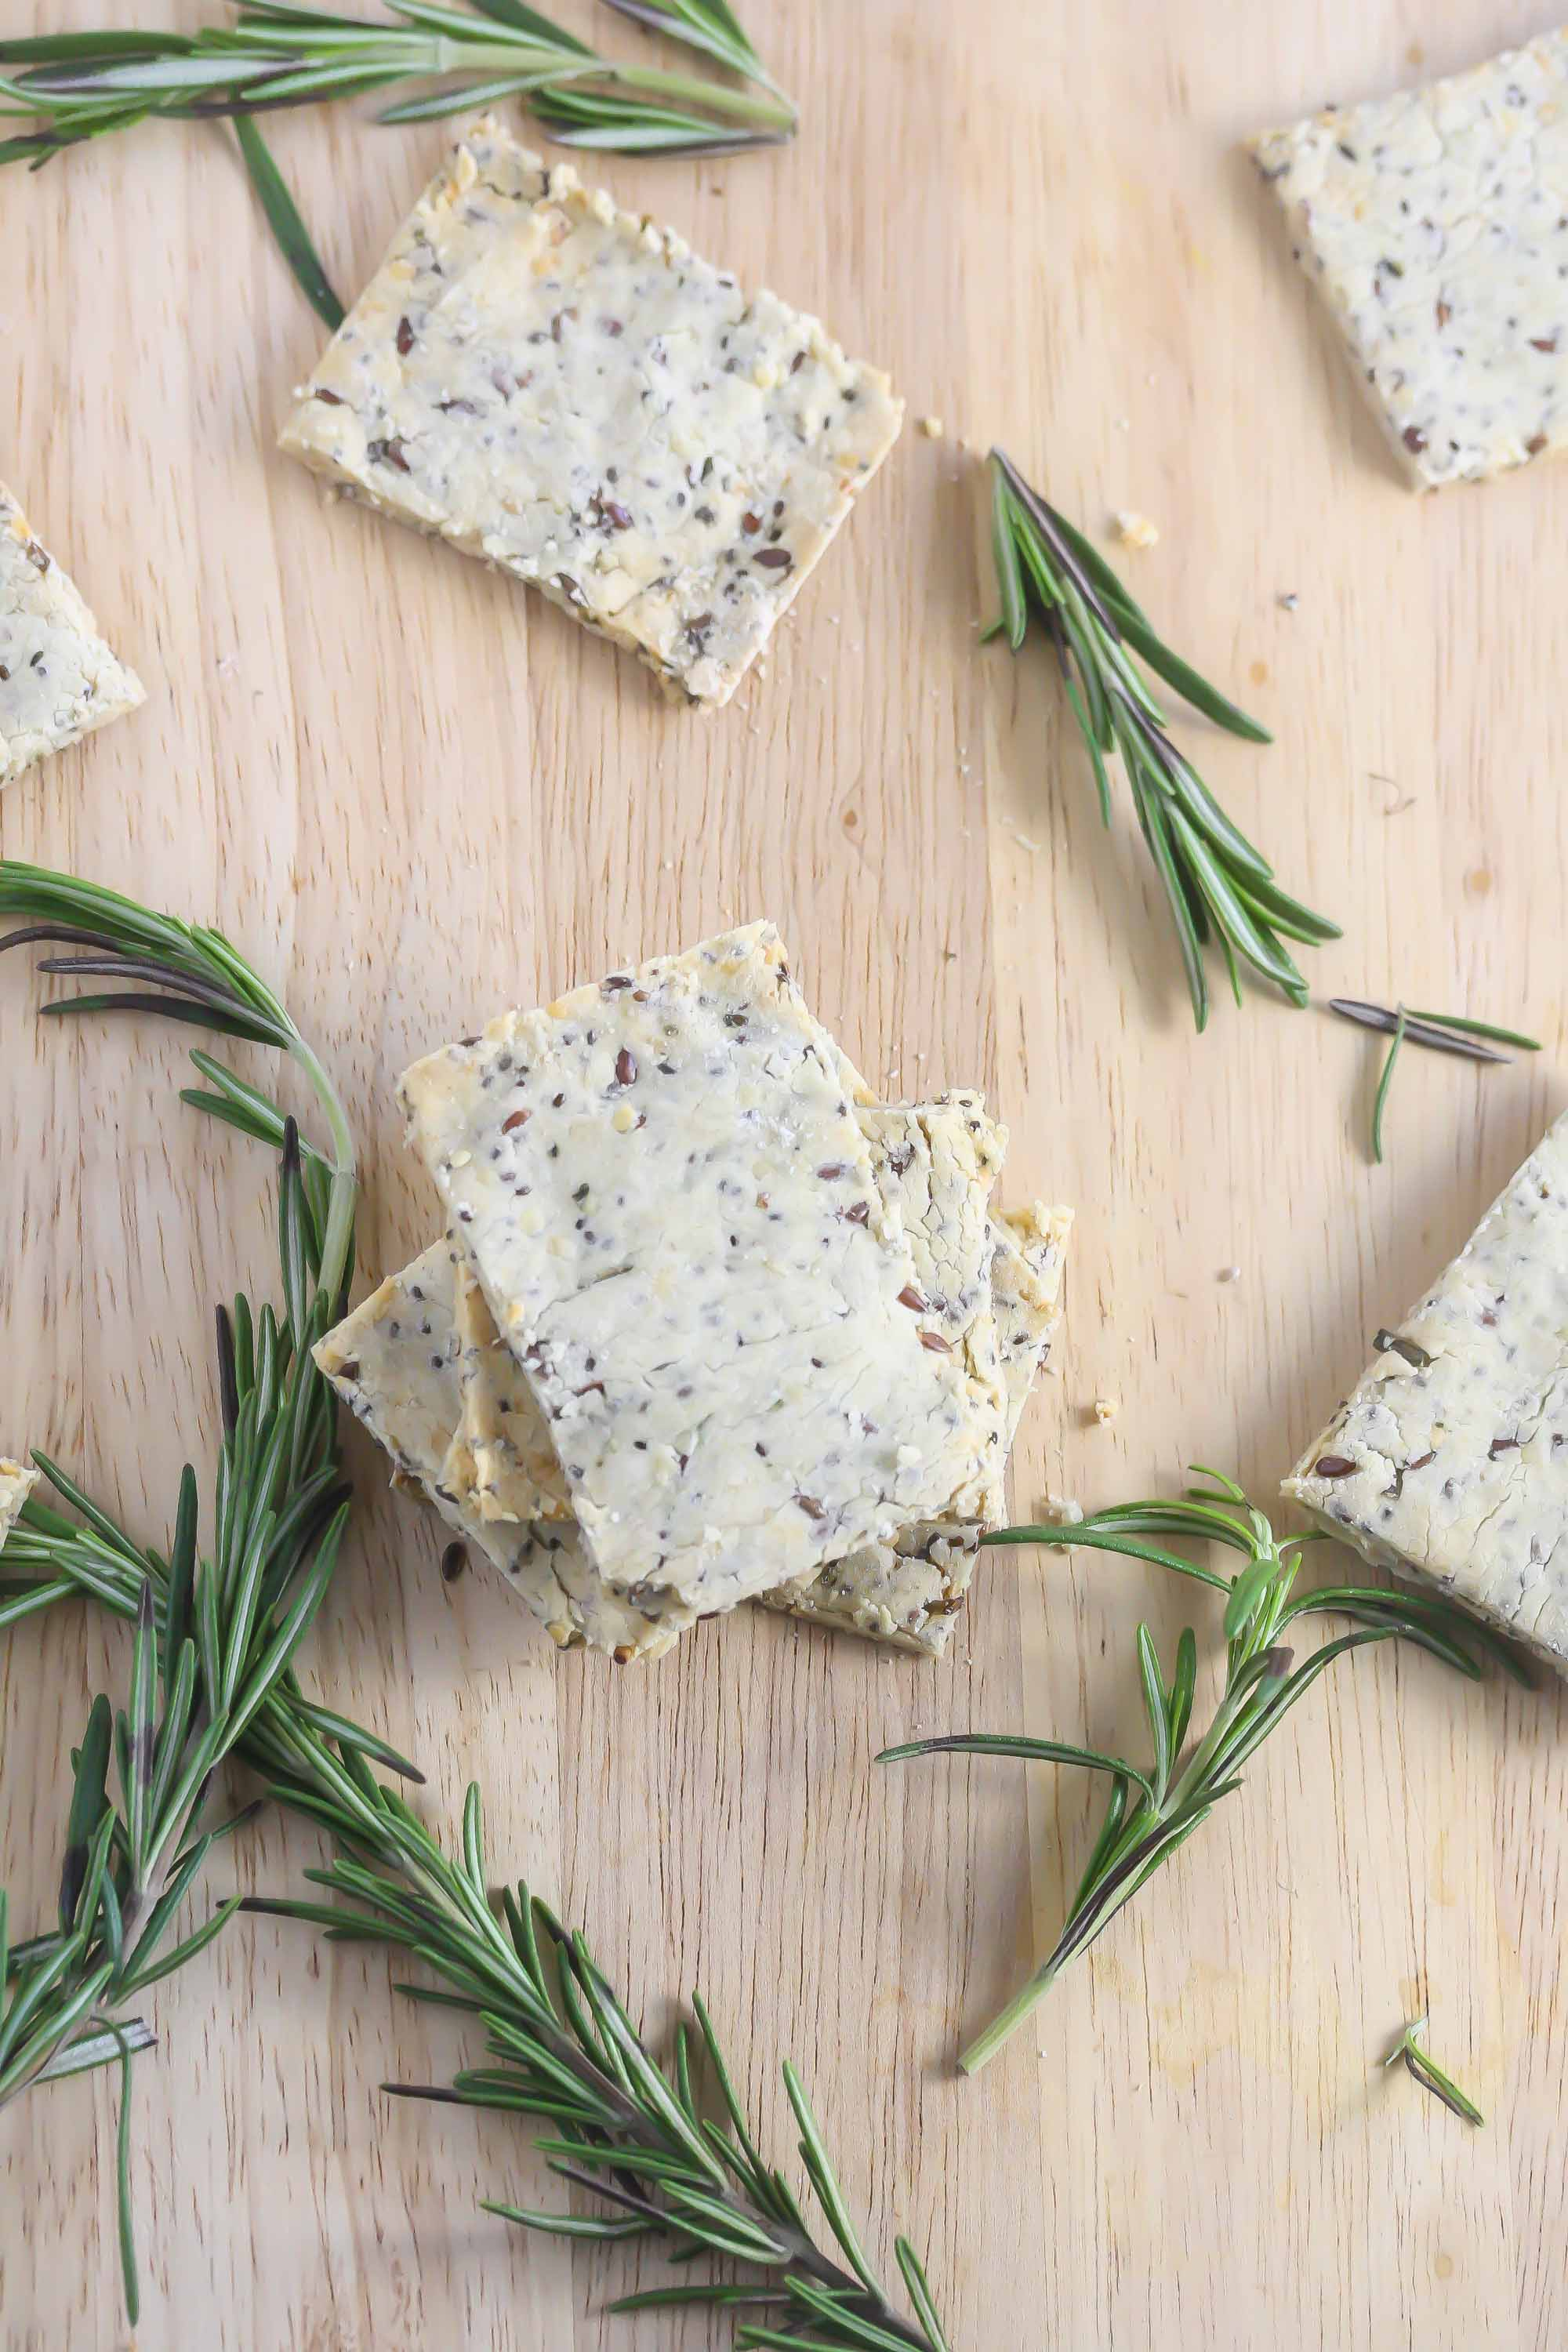 These Gluten-Free Rosemary Super Seed Crackers are healthy and delicious! www.laurenkellynutrition.com